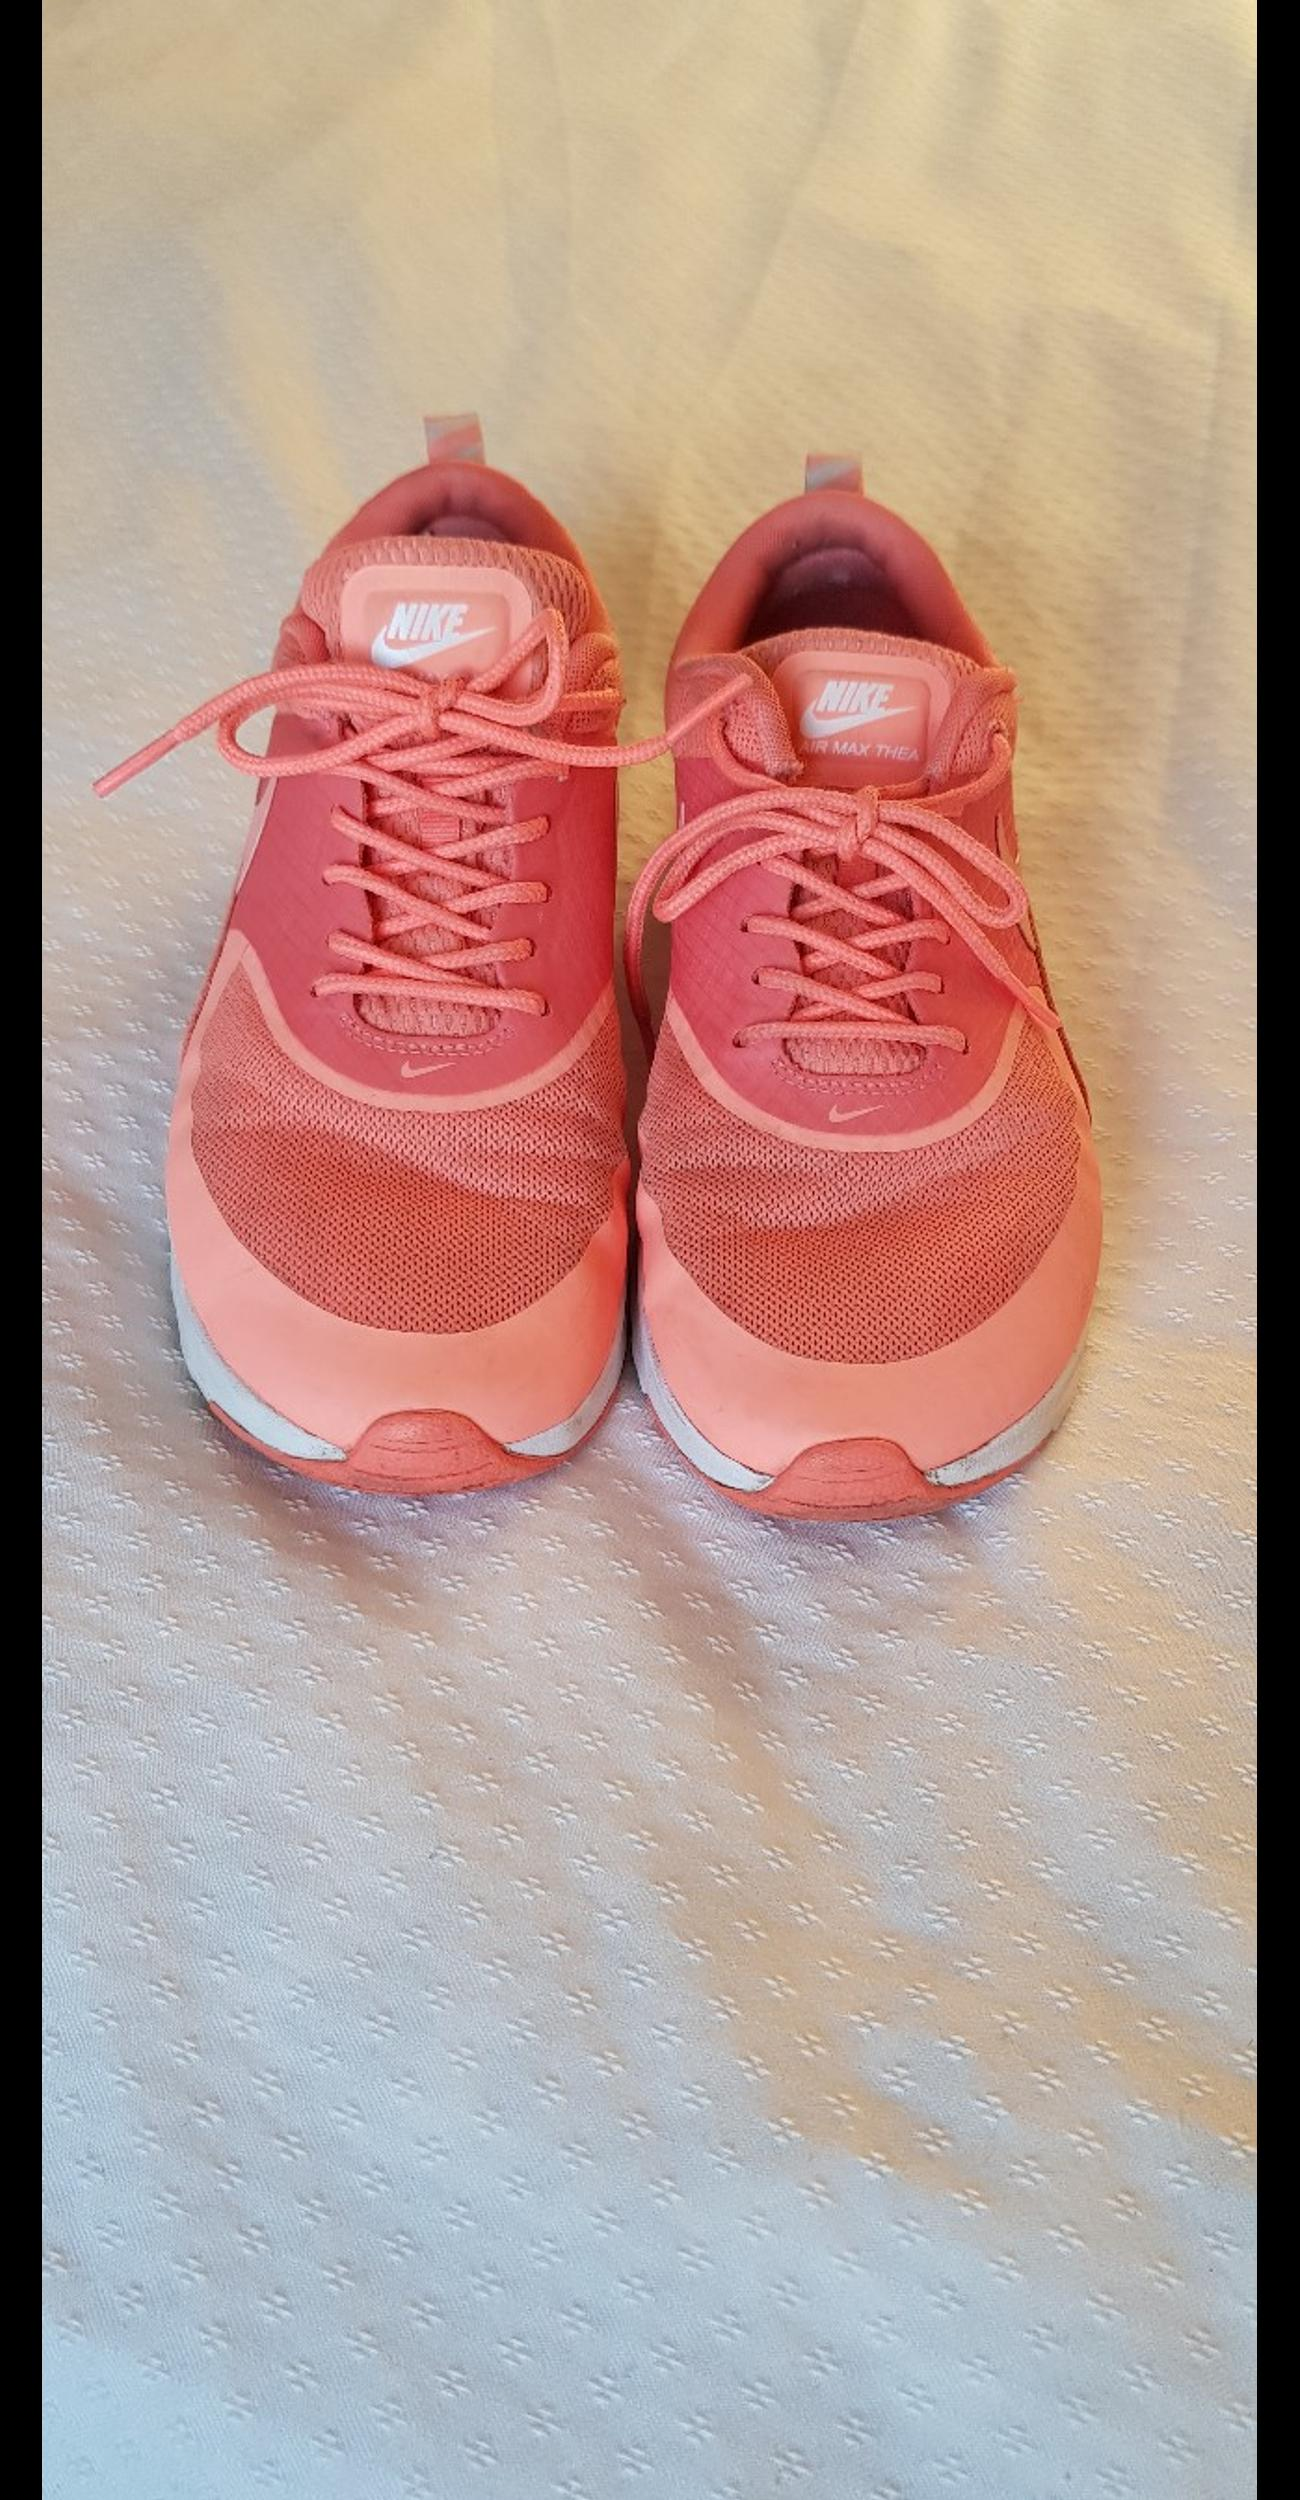 Nike Air Thea in 17159 Dargun for €35.00 for sale | Shpock